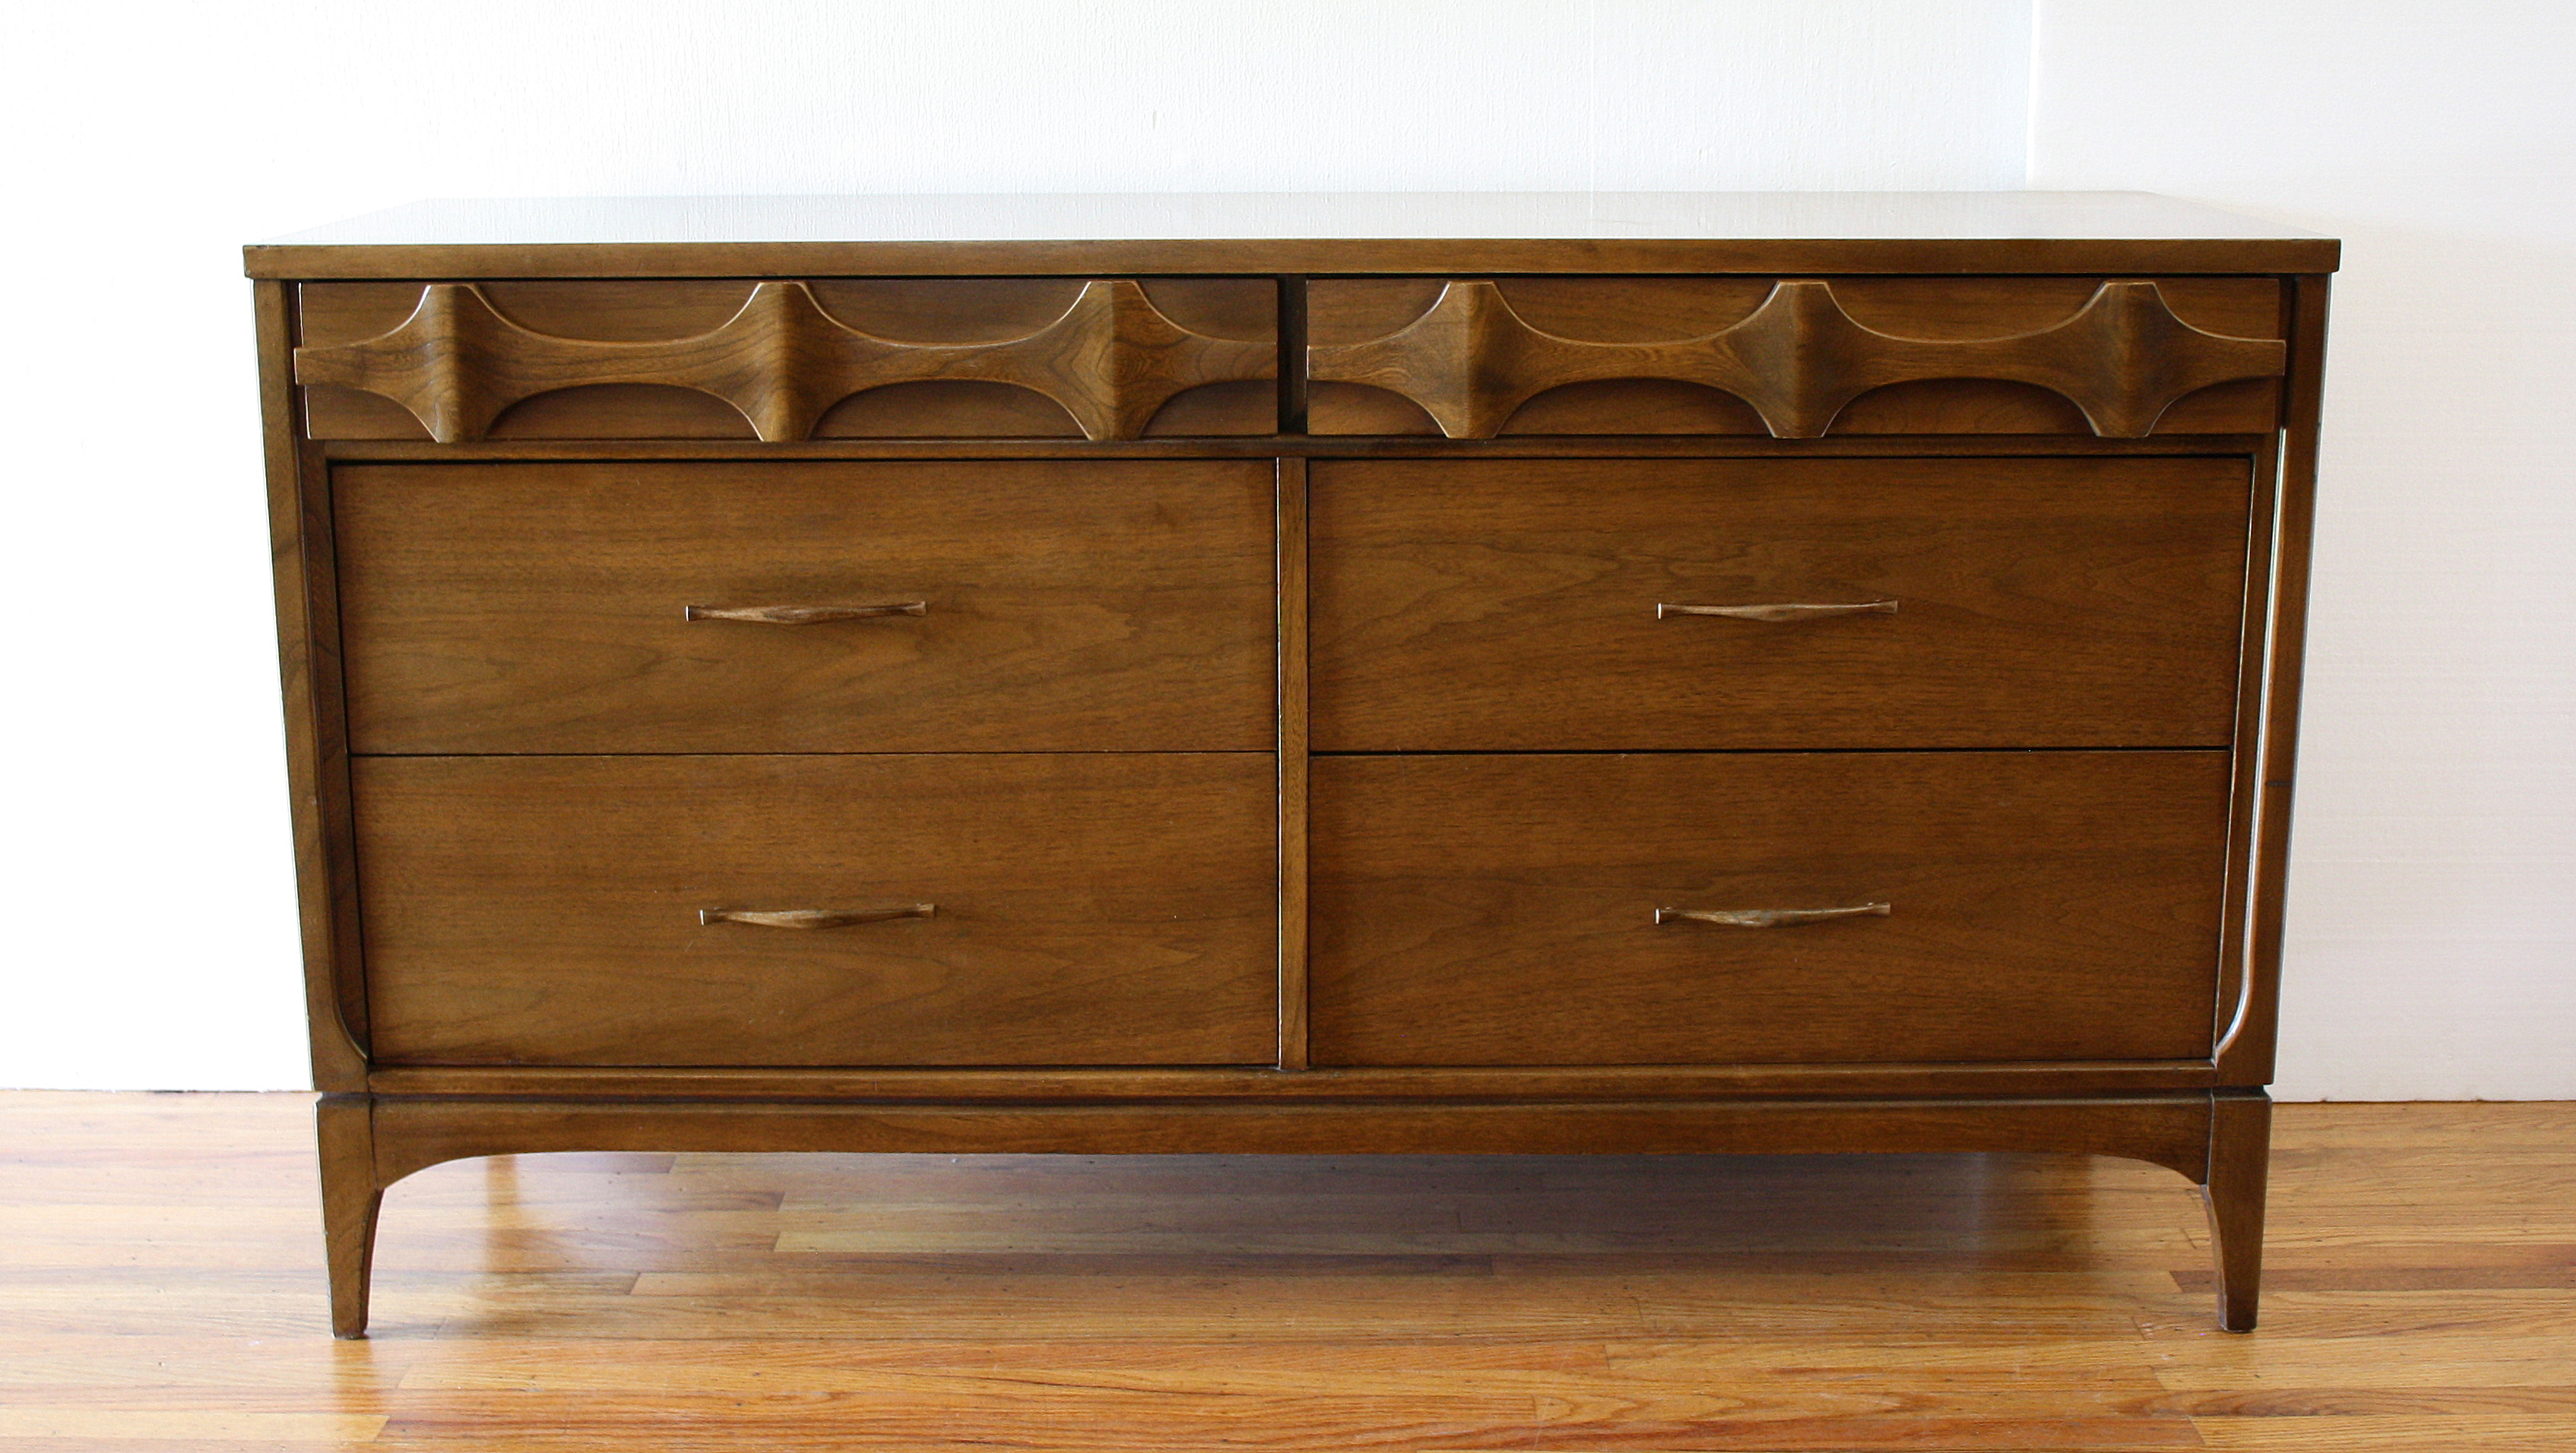 Mcm low dreser credenza with arches 3.JPG